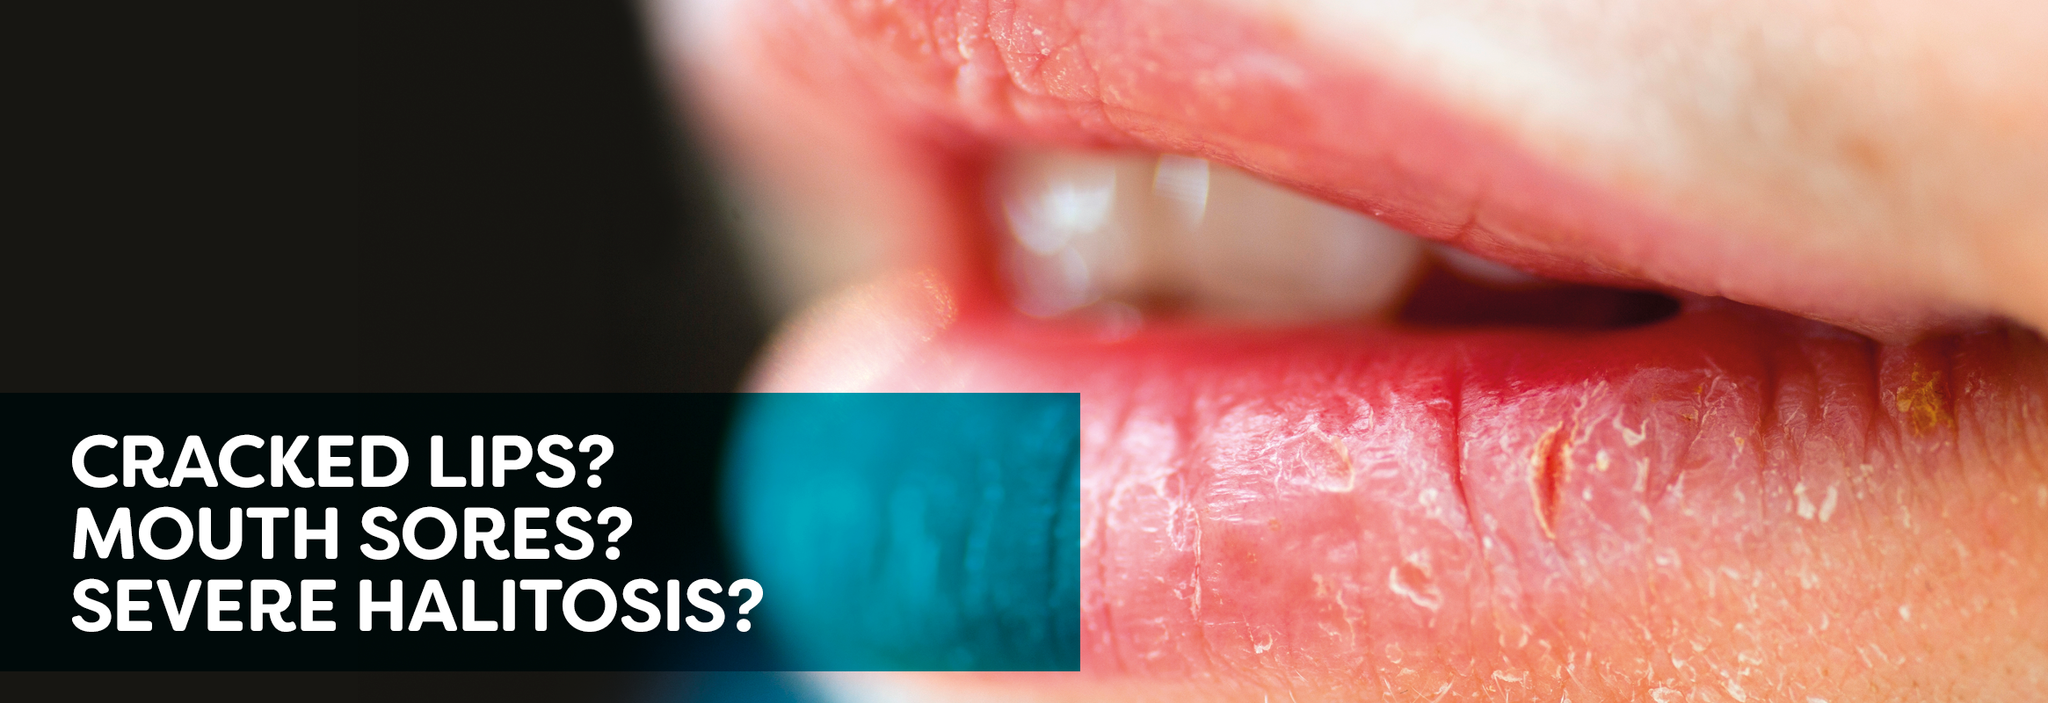 Cracked lips? Mouth sores? Severe Halitosis?